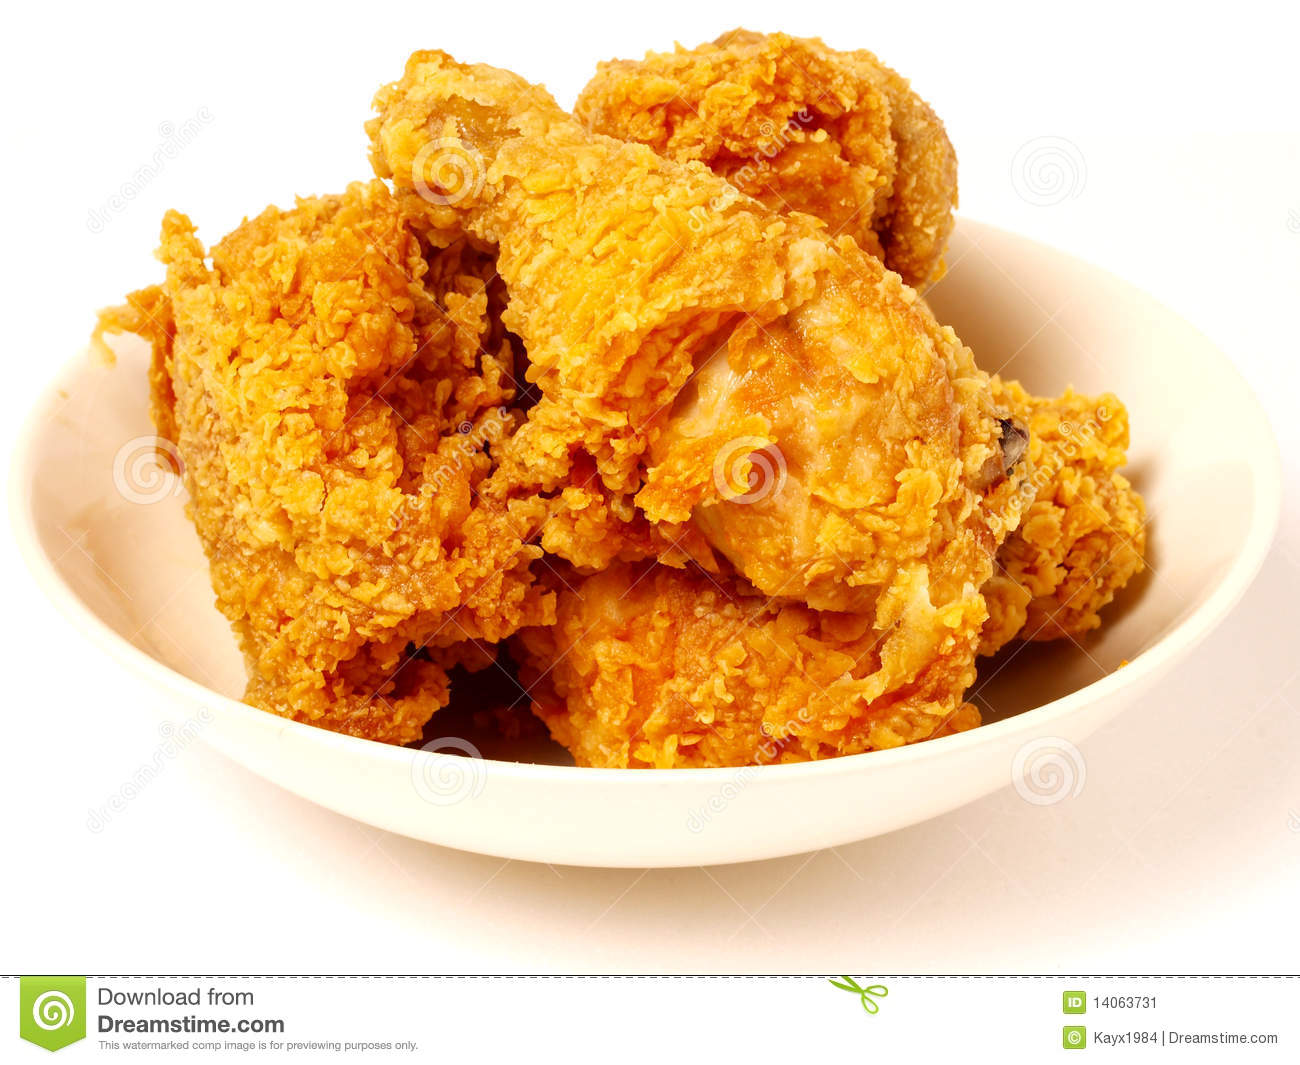 Fried chicken clip art - photo#14